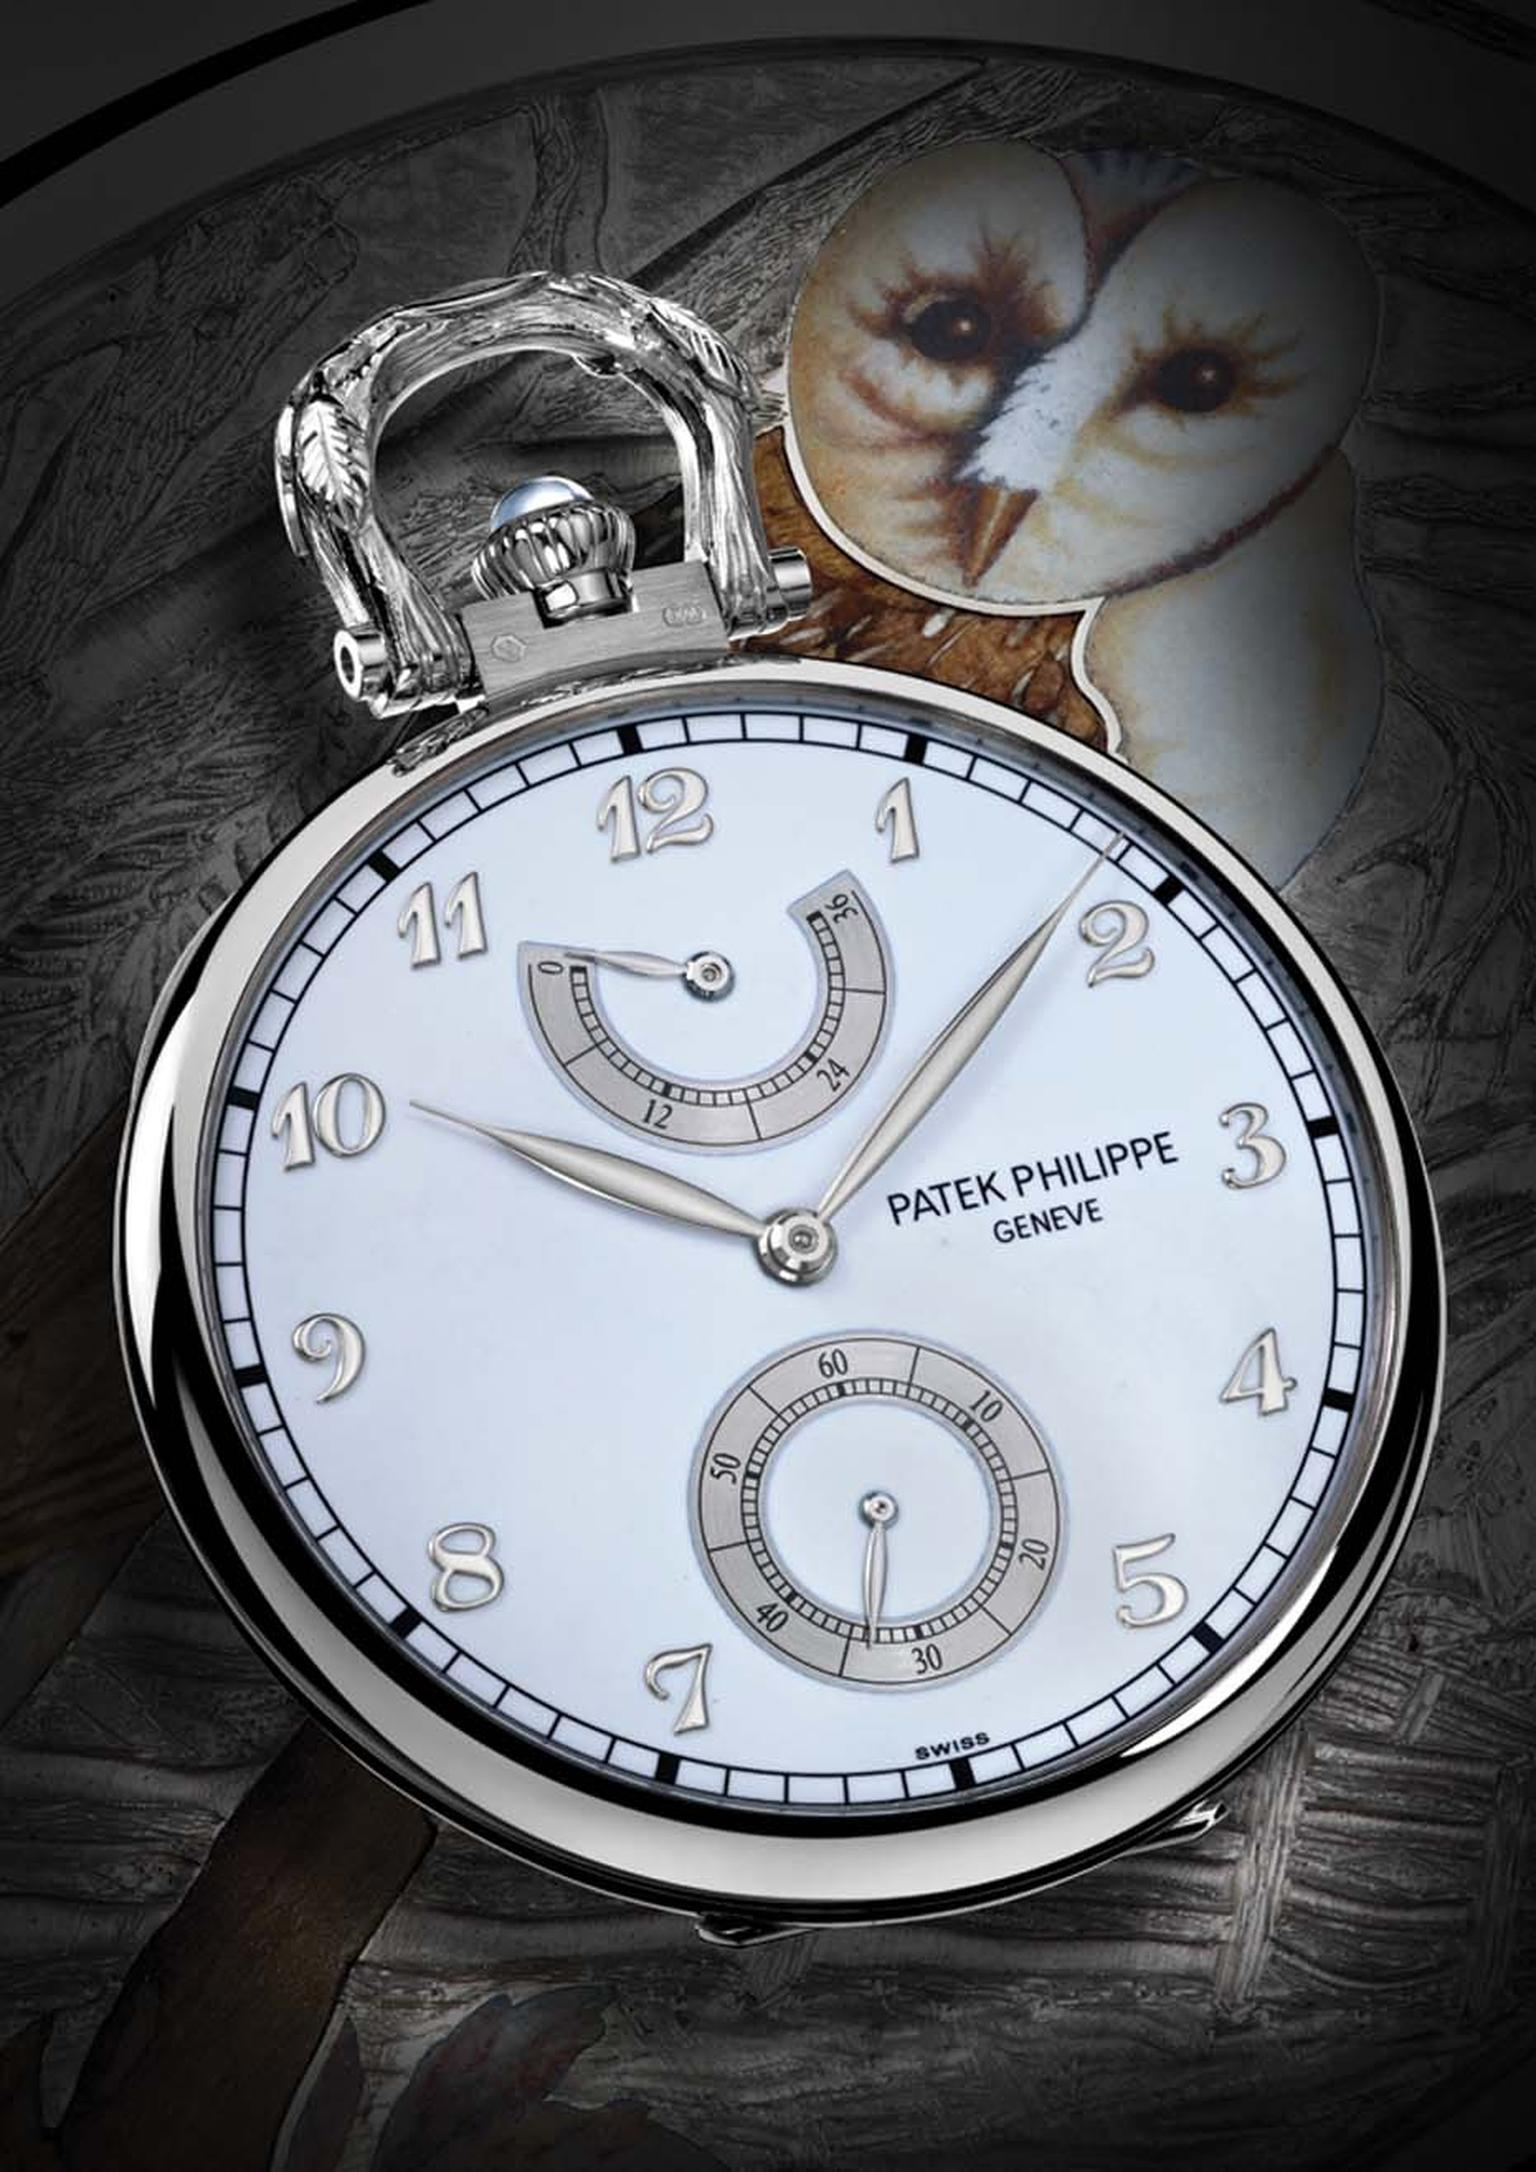 Patekpocketwatches007.jpg